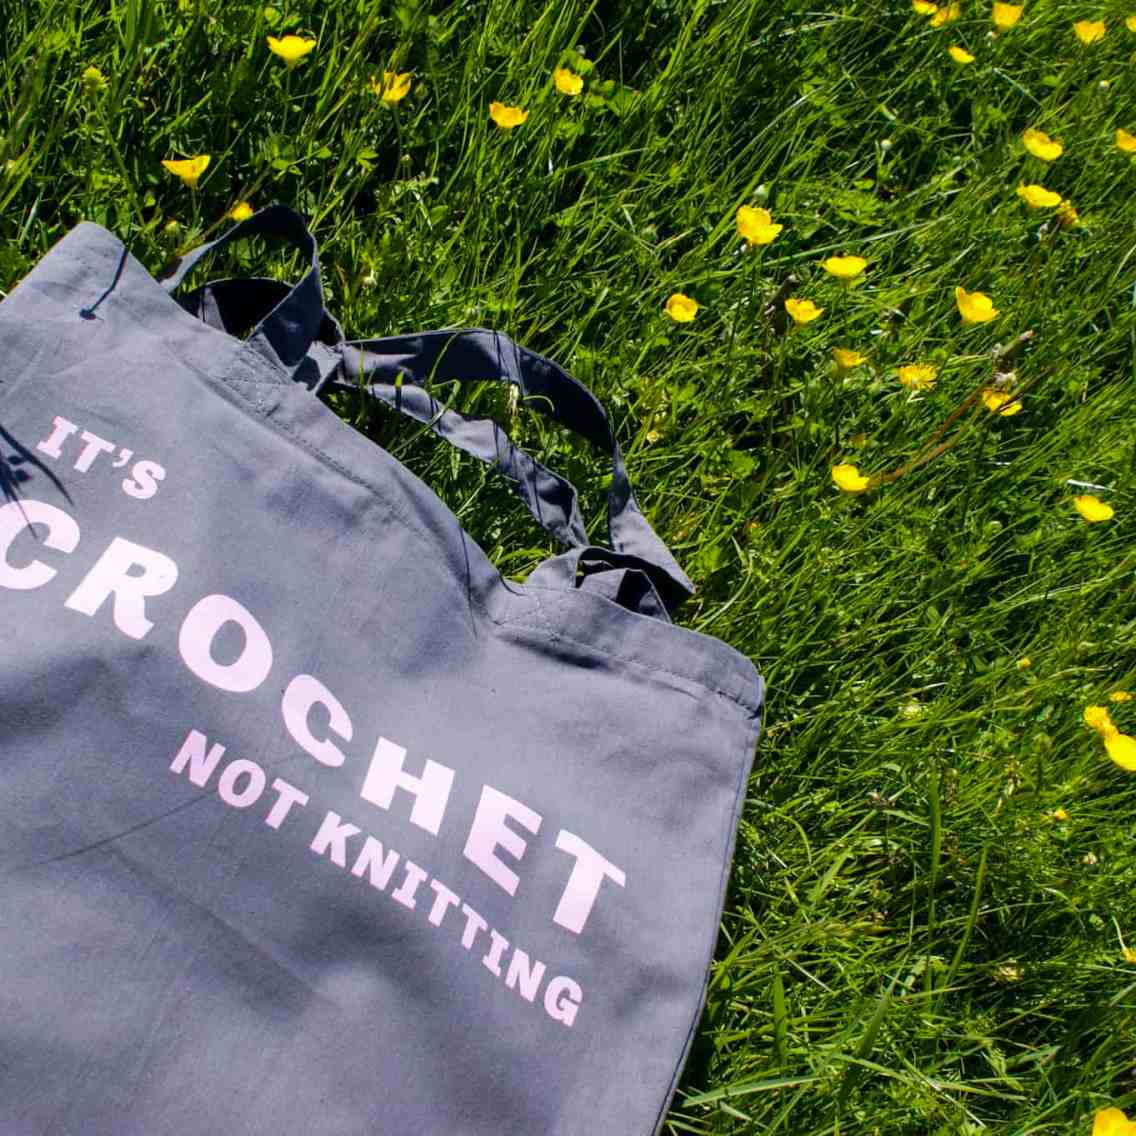 It's crochet not knitting tote bag in grey cotton with blue ink hanging out in the meadow